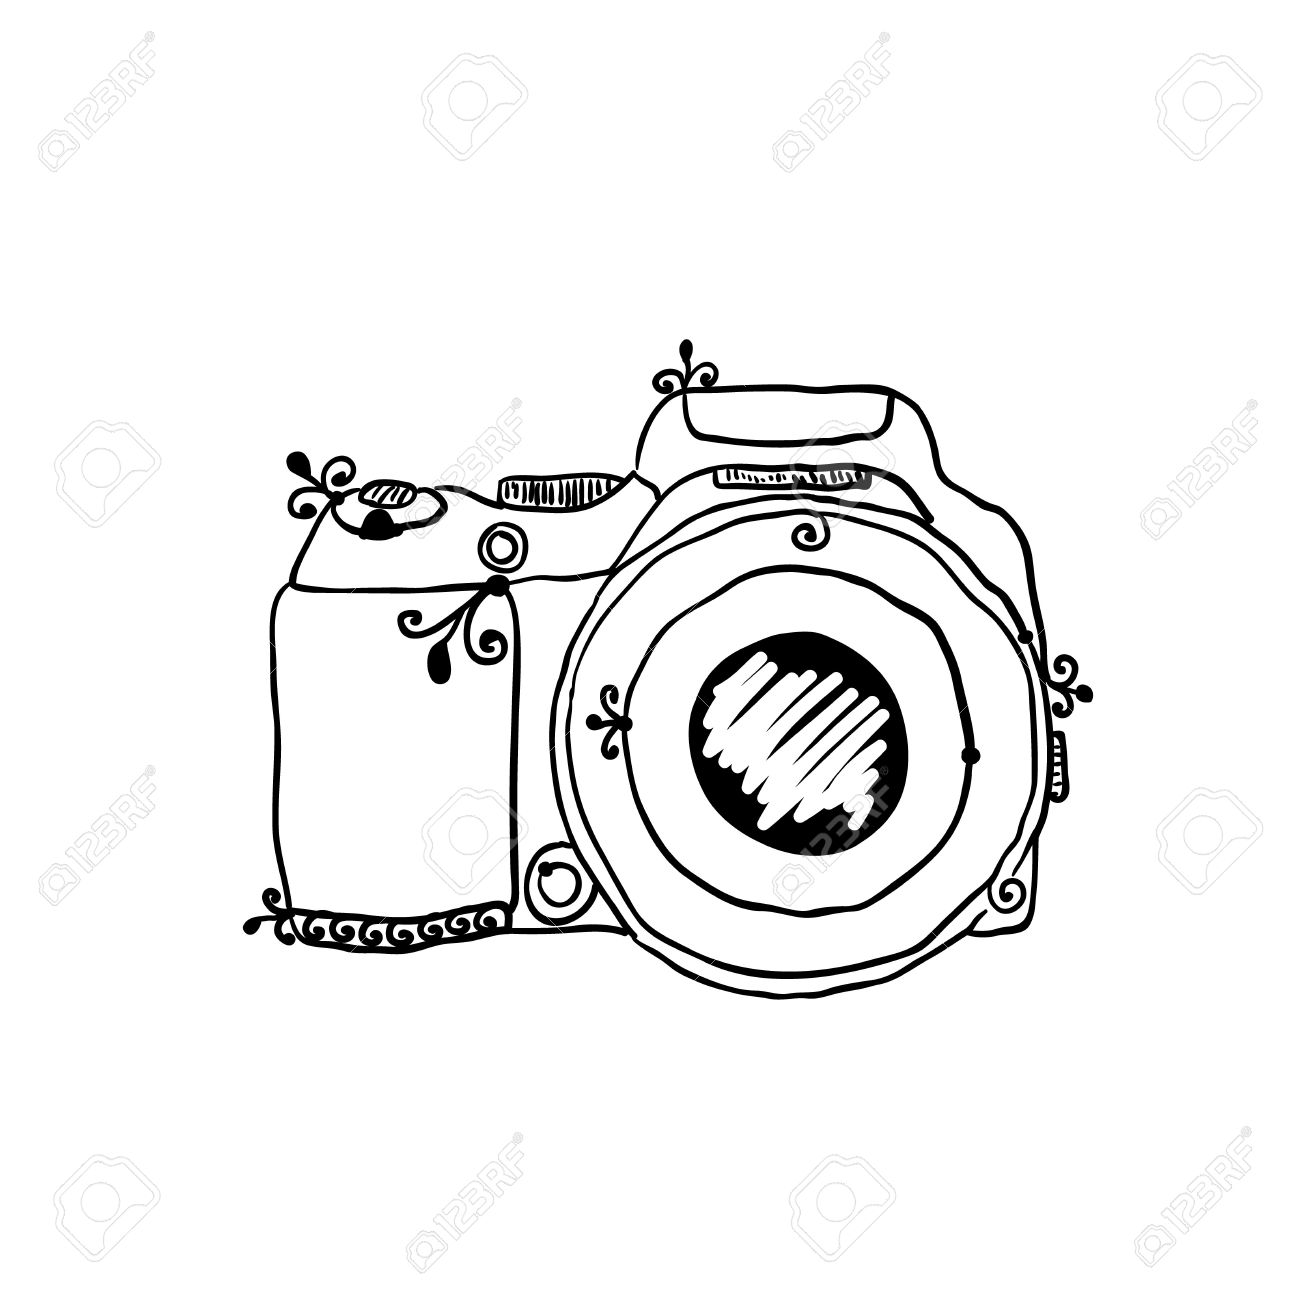 1299x1300 The Sketch Of A Photo Camera Drawn By Hand On A White Background